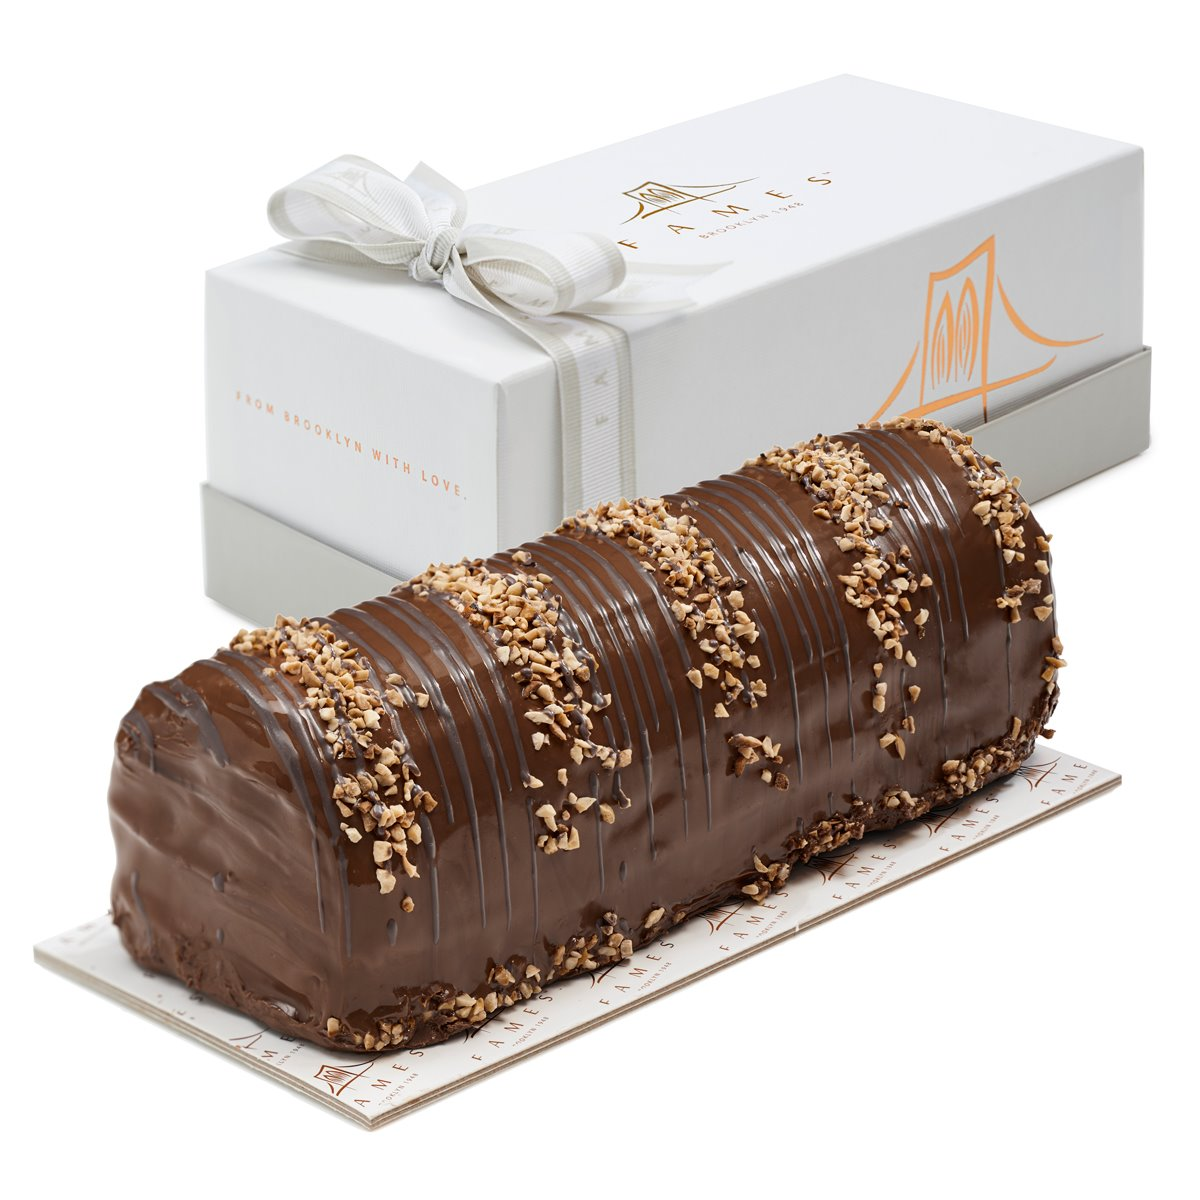 Halva & Chocolate Logs